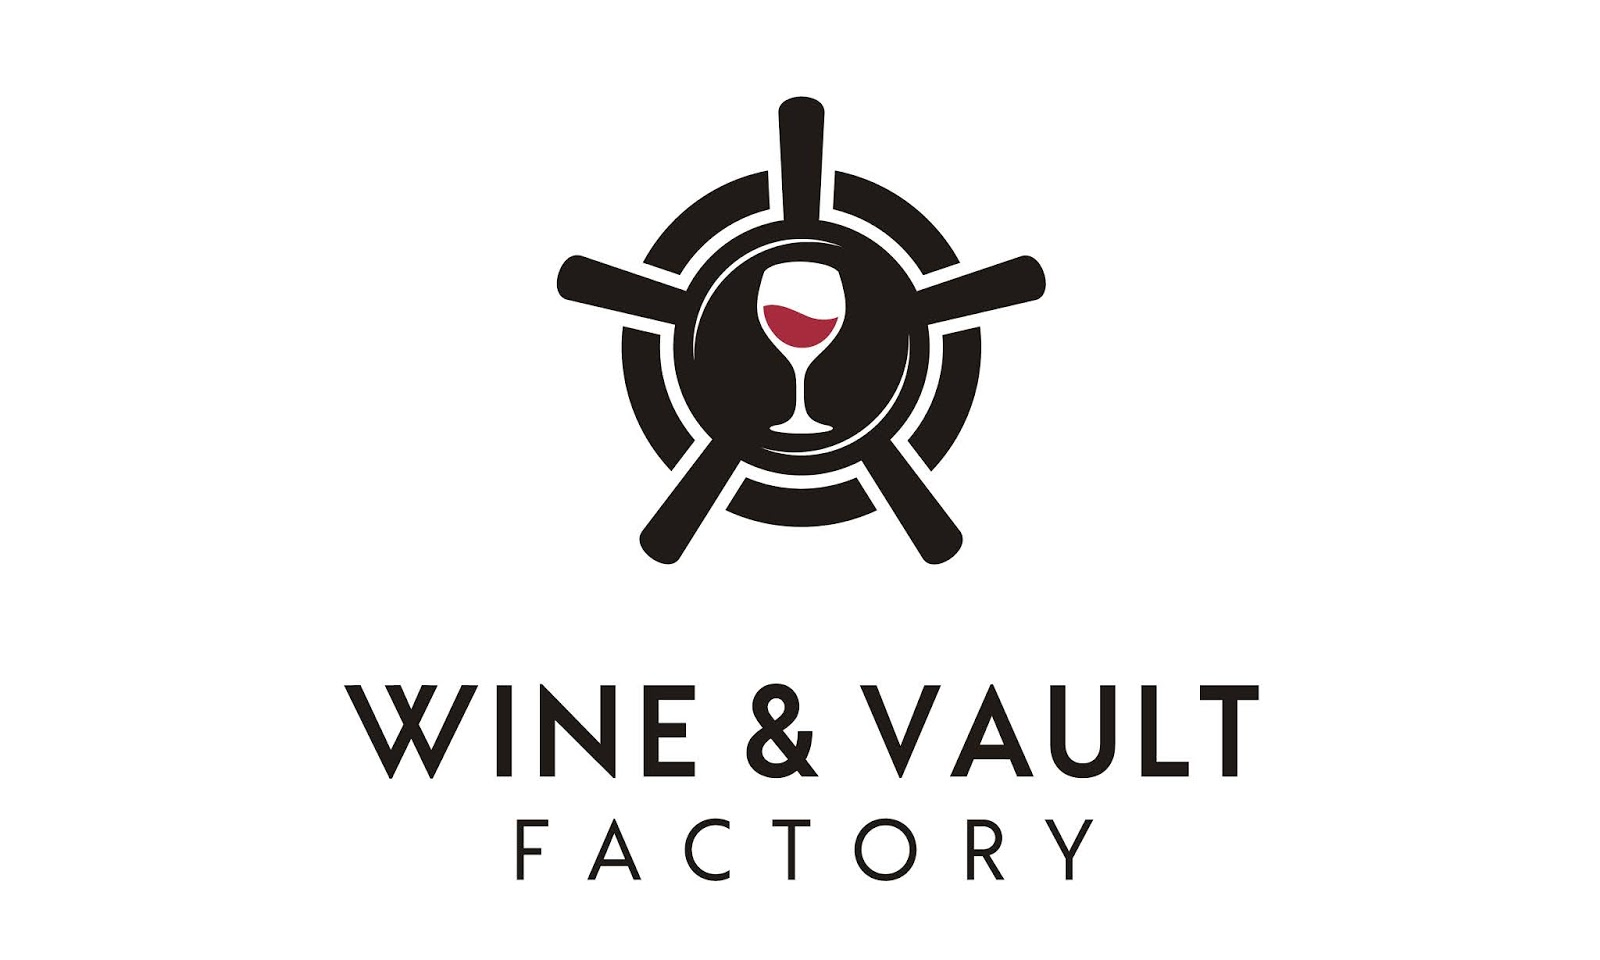 Wine Vault Factory Logo Free Download Vector CDR, AI, EPS and PNG Formats